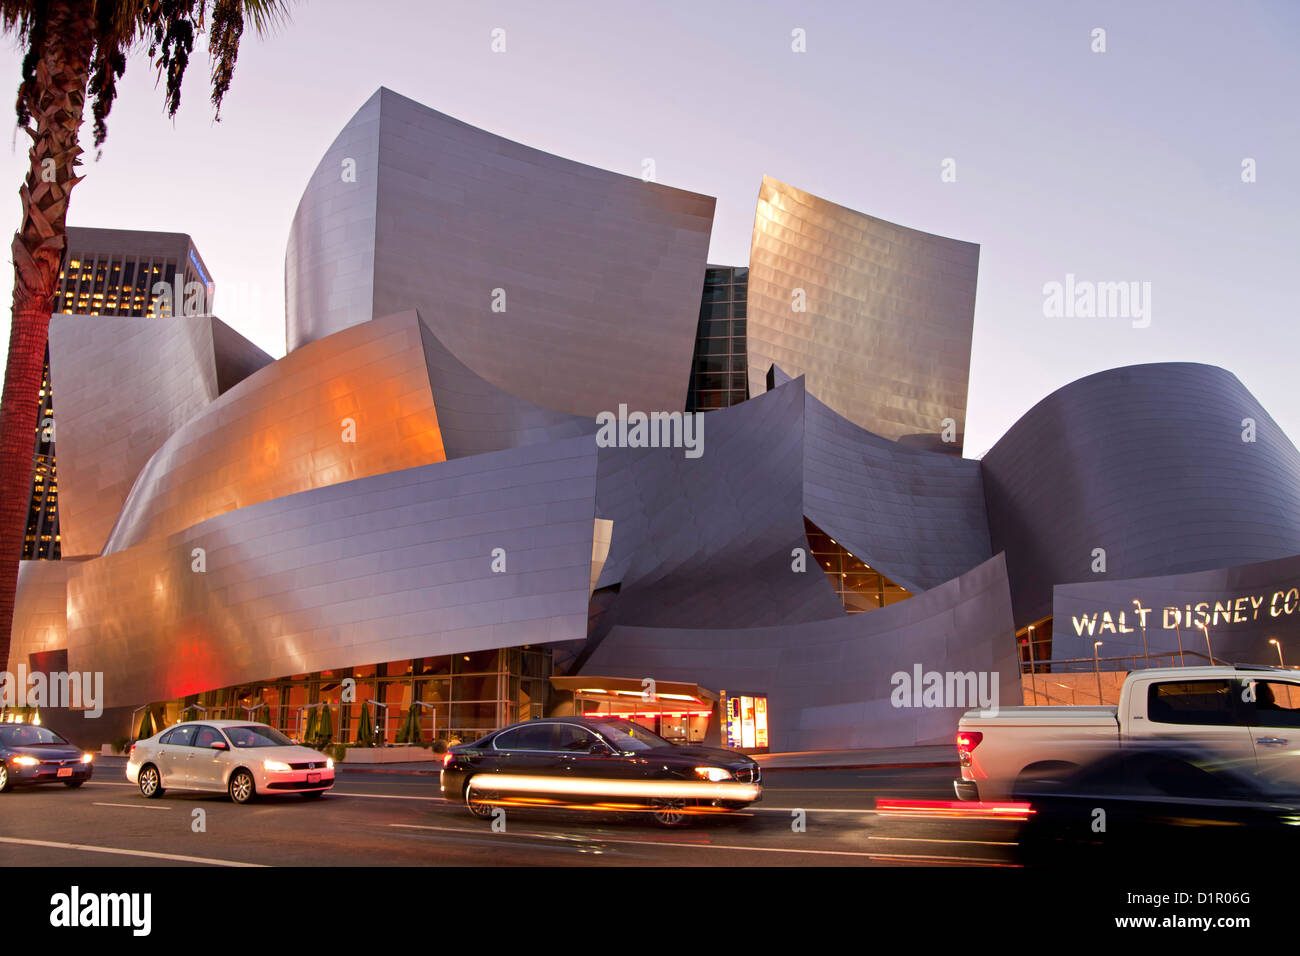 modern architecture by Frank Gehry at night, Walt Disney Concert Hall, Downtown Los Angeles, California, United - Stock Image